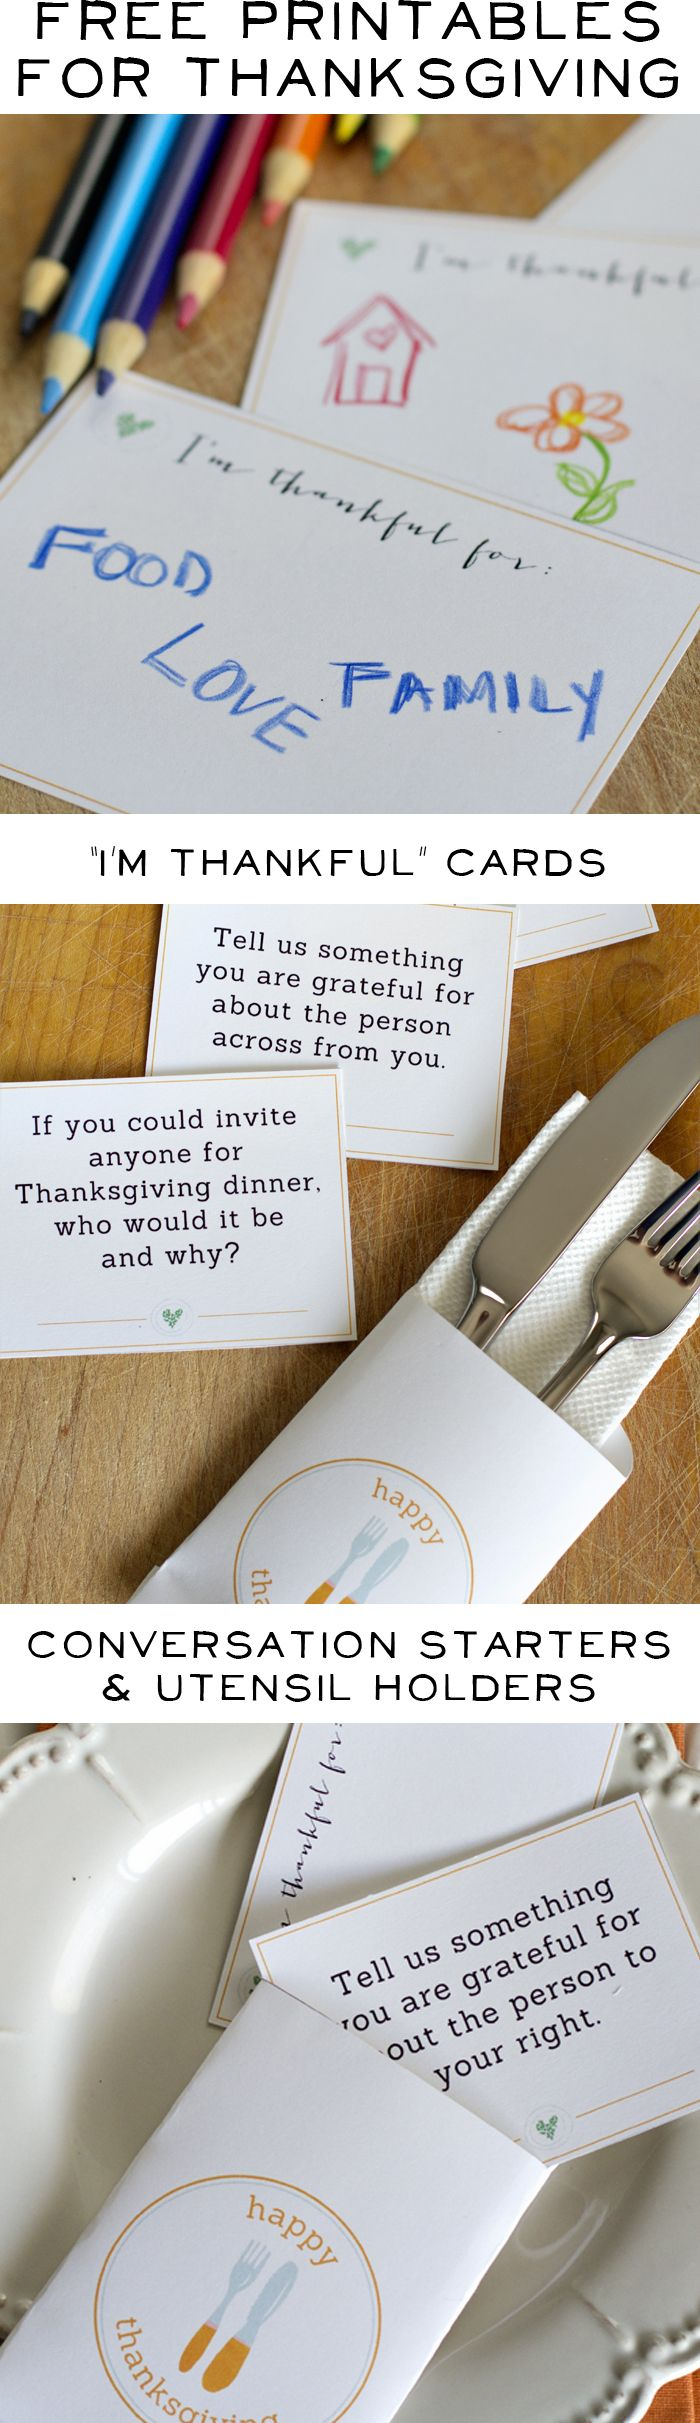 Free Printables for your Thanksgiving Table - Thankful cards, Conversation Starters, Utensil holders